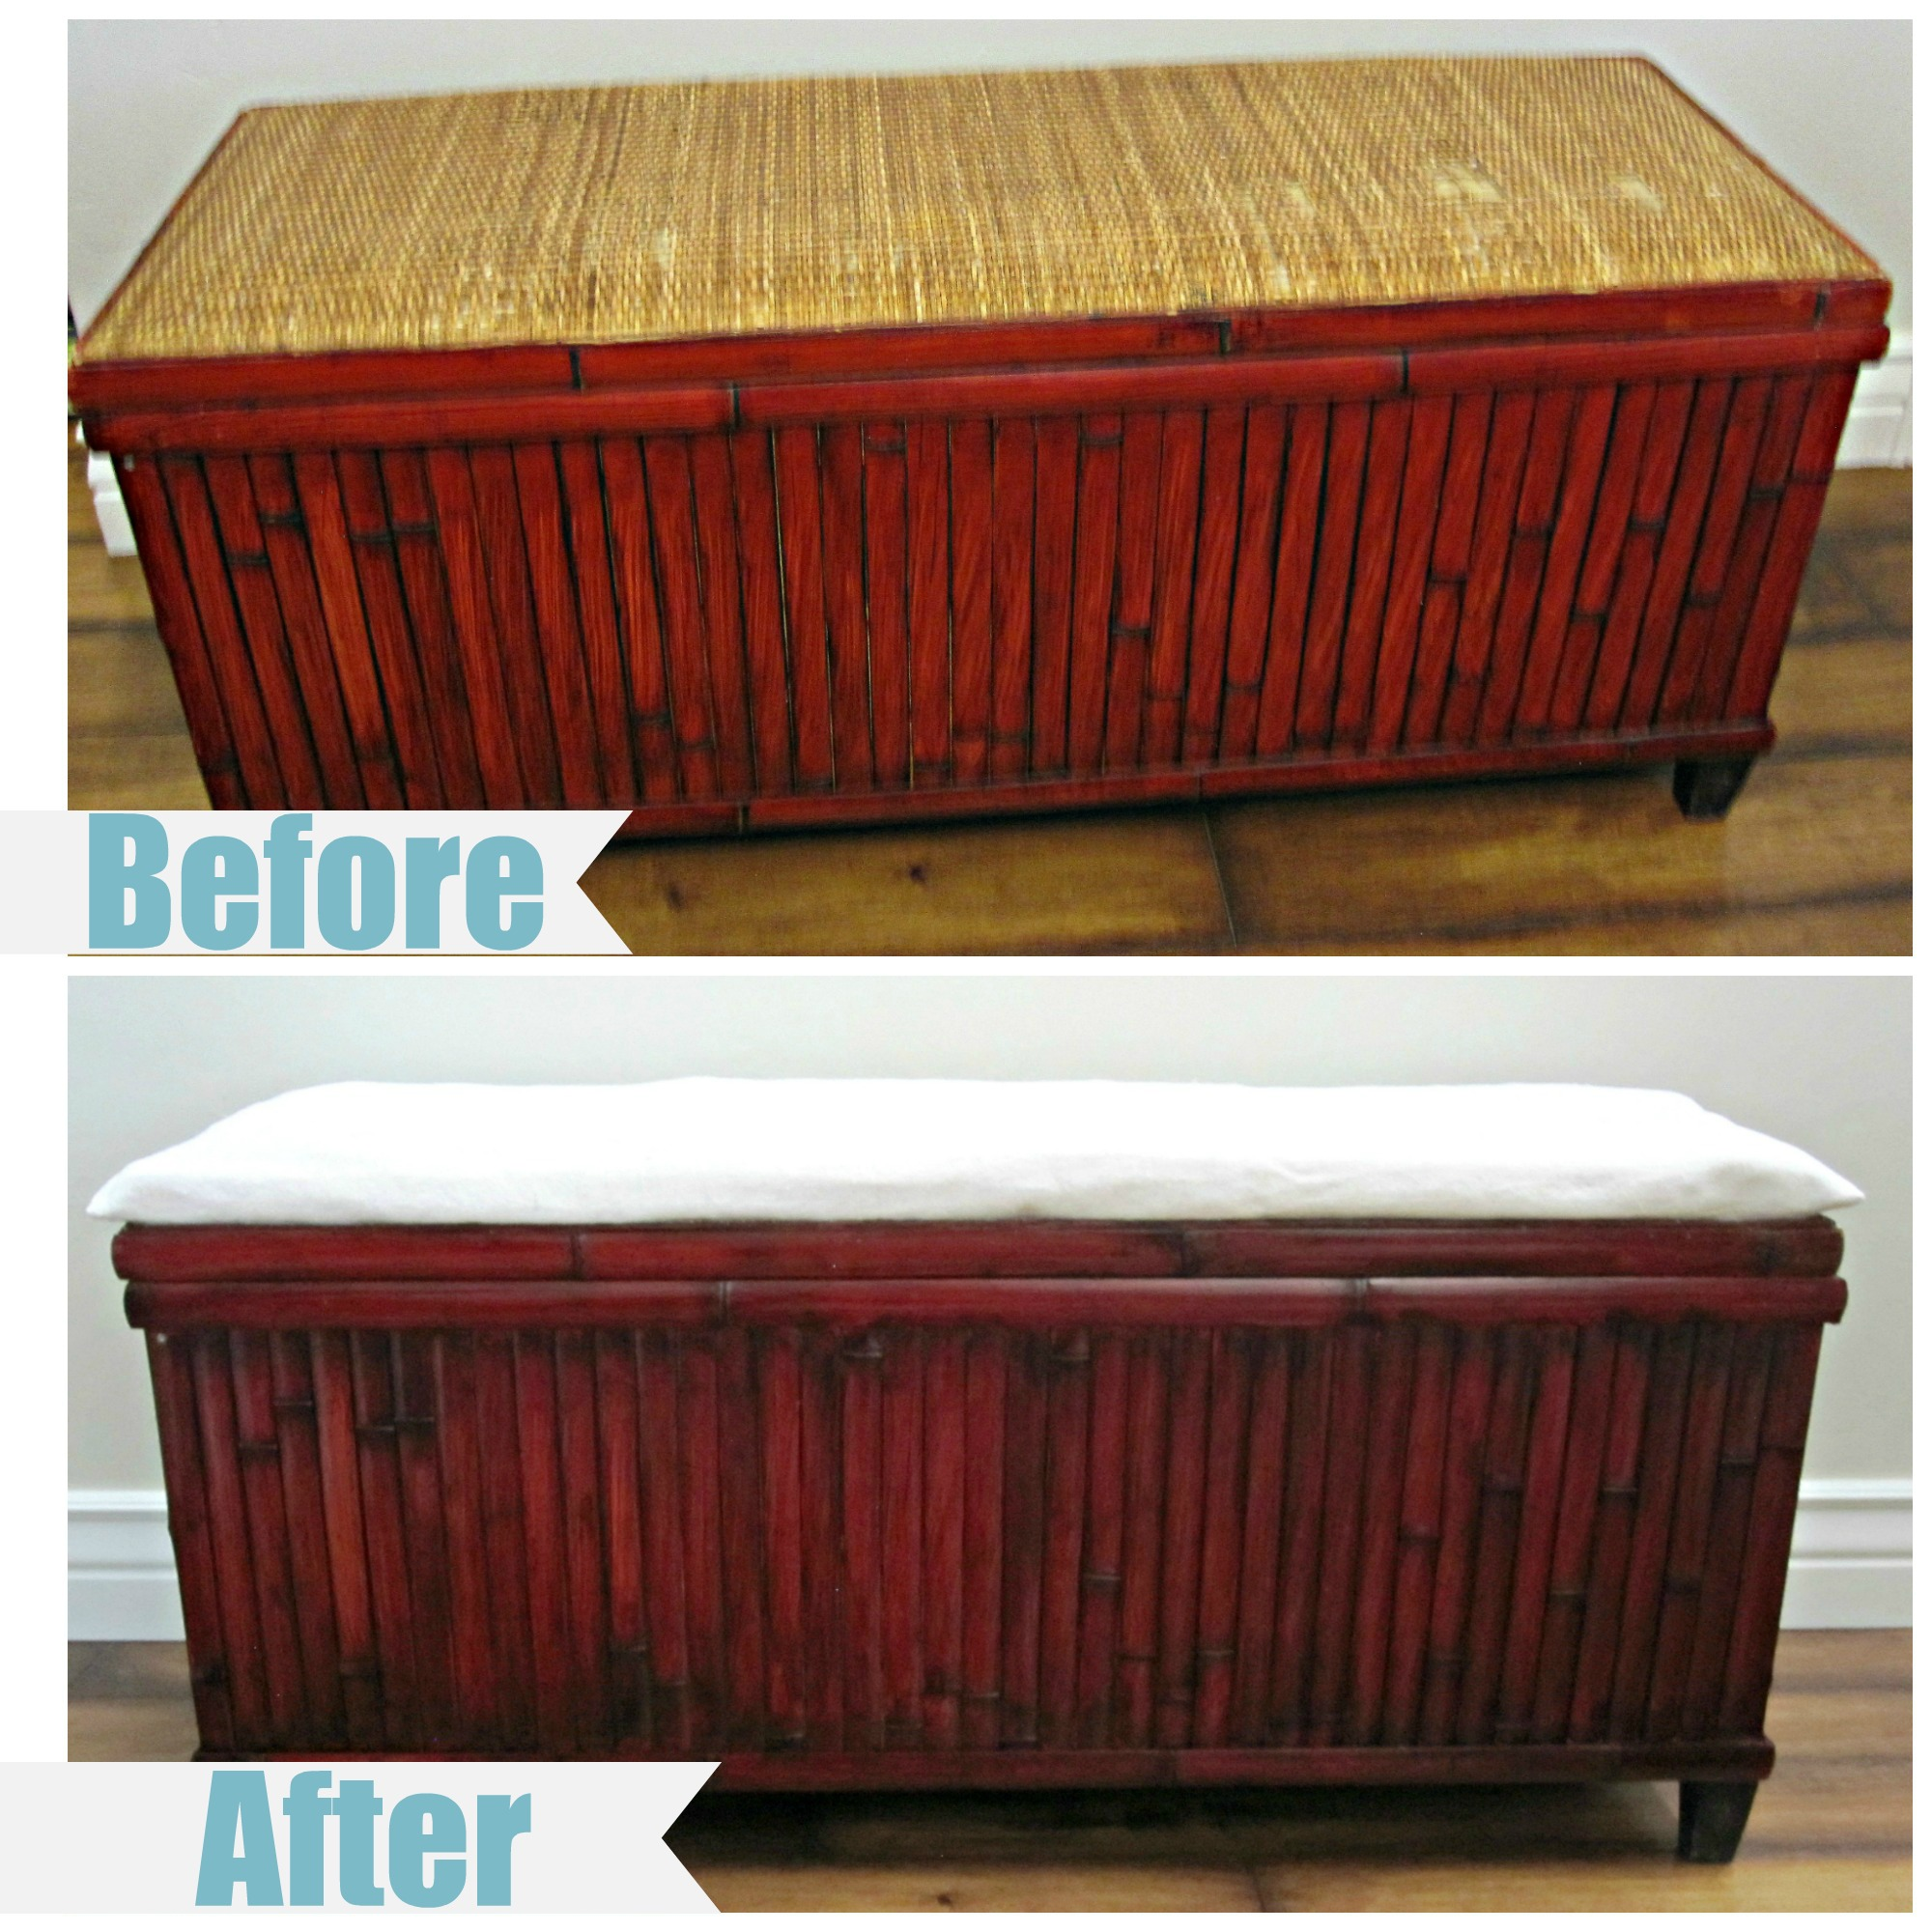 bench-before-and-after